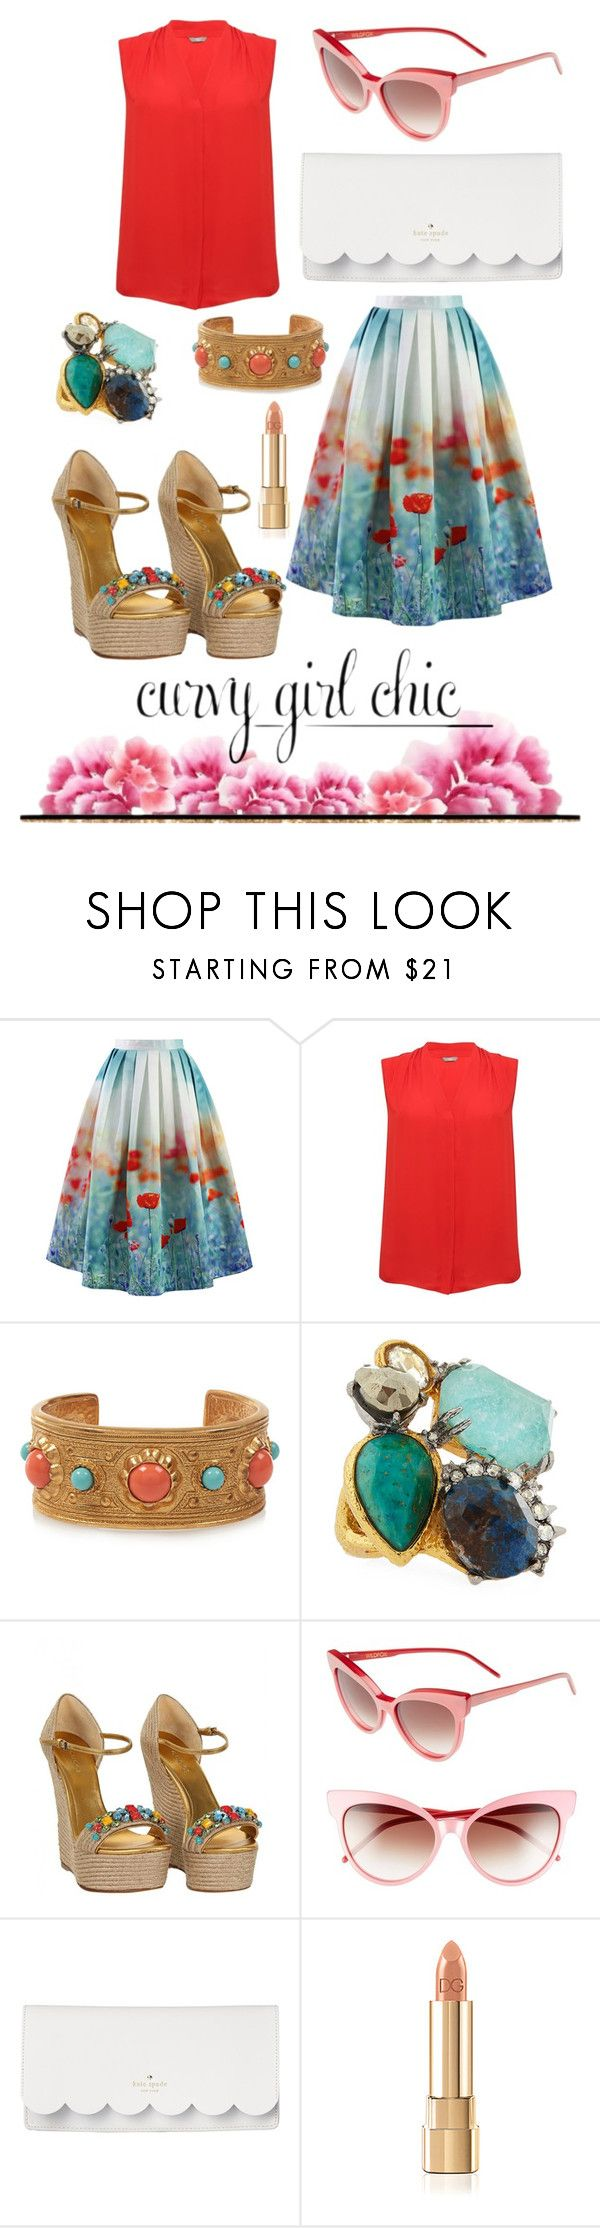 """""""Floral Skirts with Curvy Girl Chic"""" by zoe-keredy ❤ liked on Polyvore featuring Chicwish, M&Co, Ben-Amun, Alexis Bittar, Gucci, Wildfox and Kate Spade"""